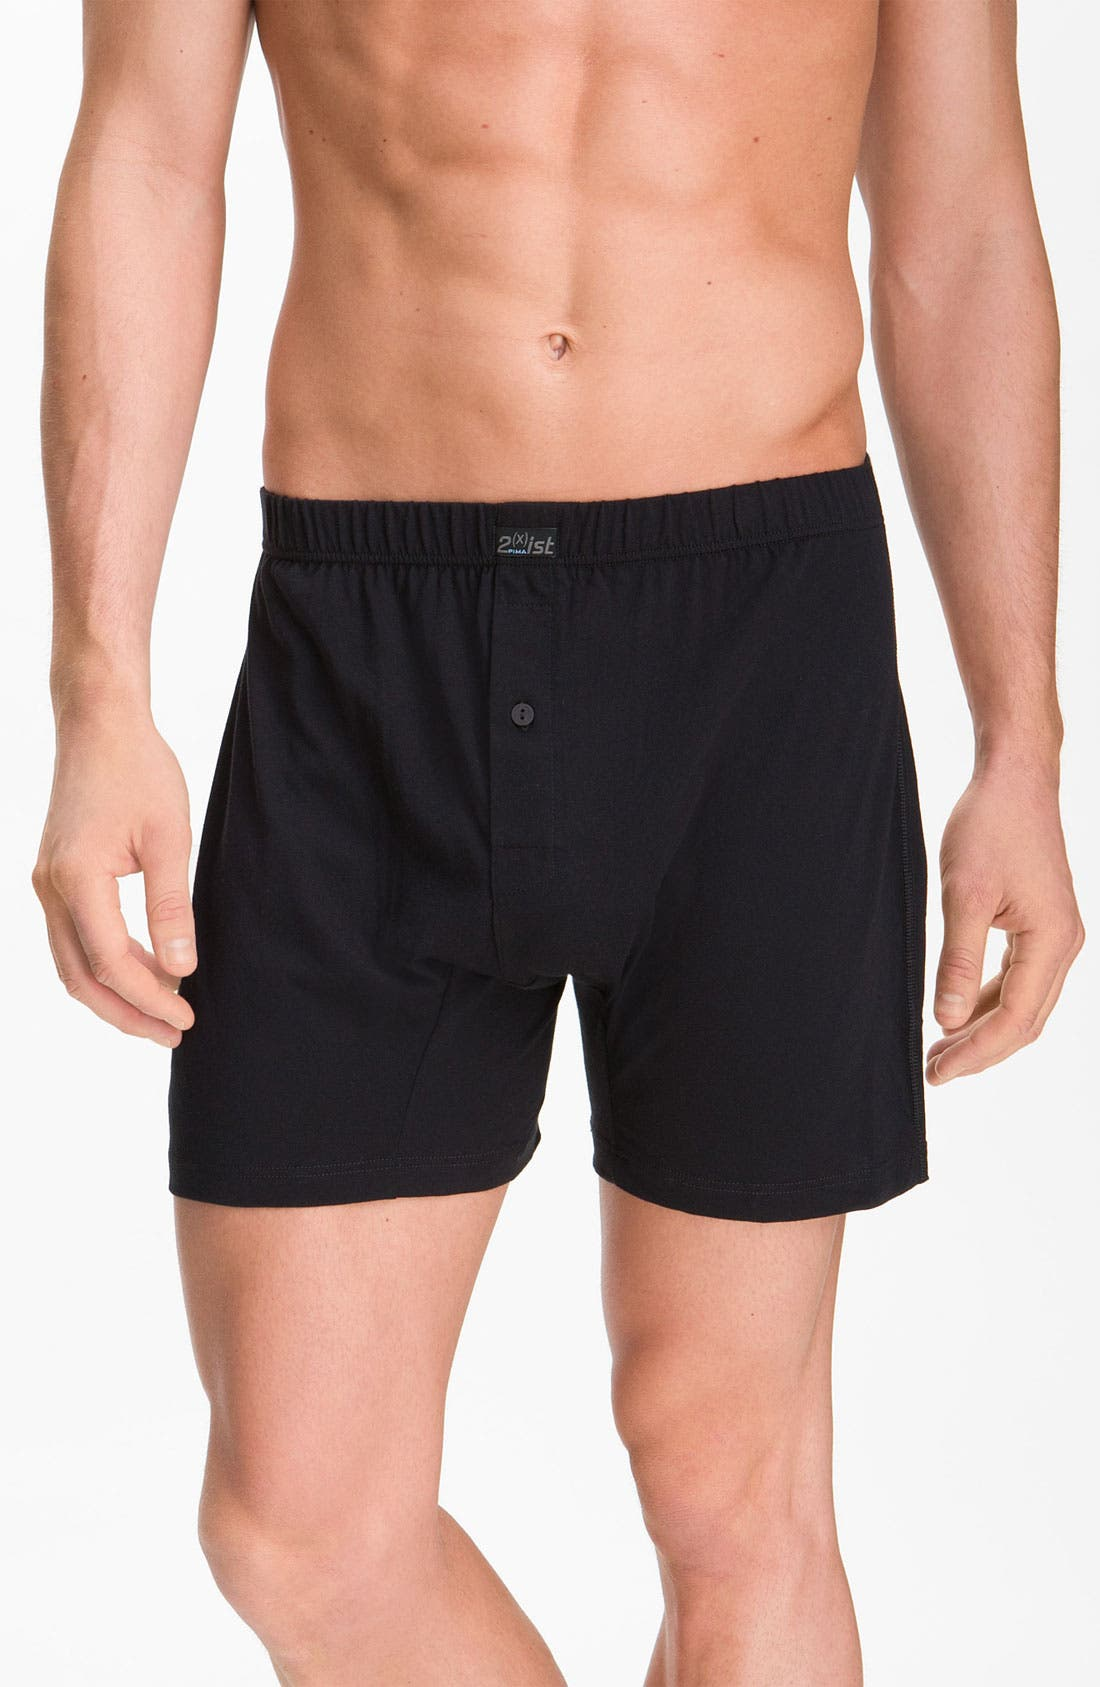 Alternate Image 1 Selected - 2-Xist Knit Pima Cotton Boxer Shorts